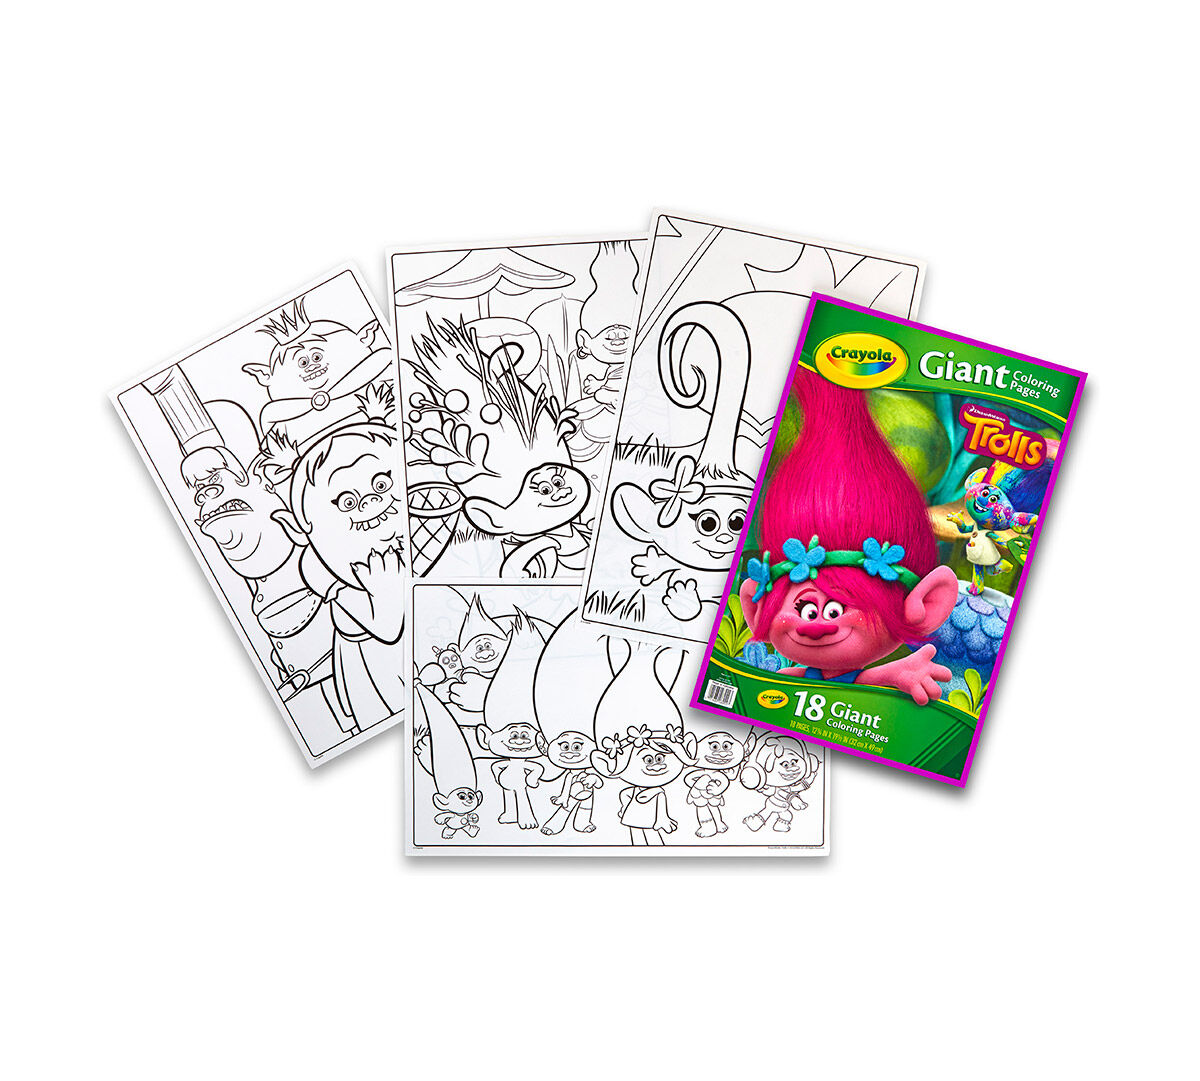 Giant Coloring Pages Trolls Crayola - Giant-coloring-pages